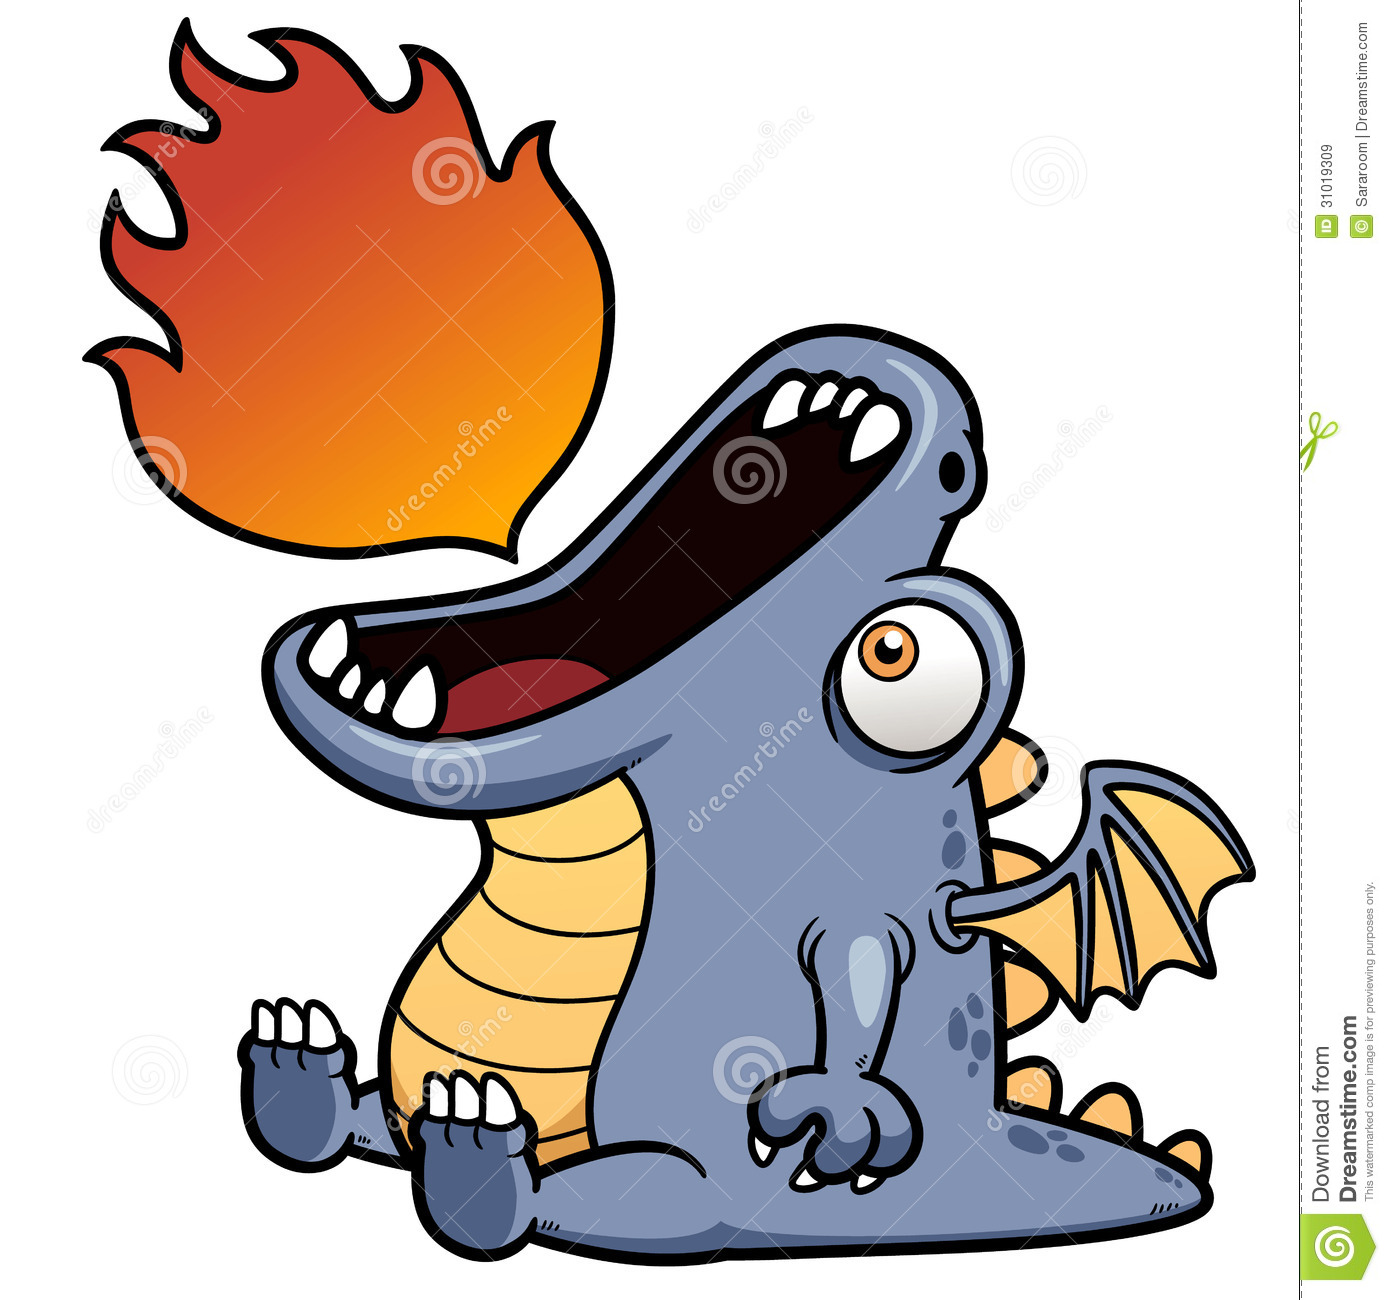 Dragon Cartoon Royalty Free Stock Images - Image: 31019309